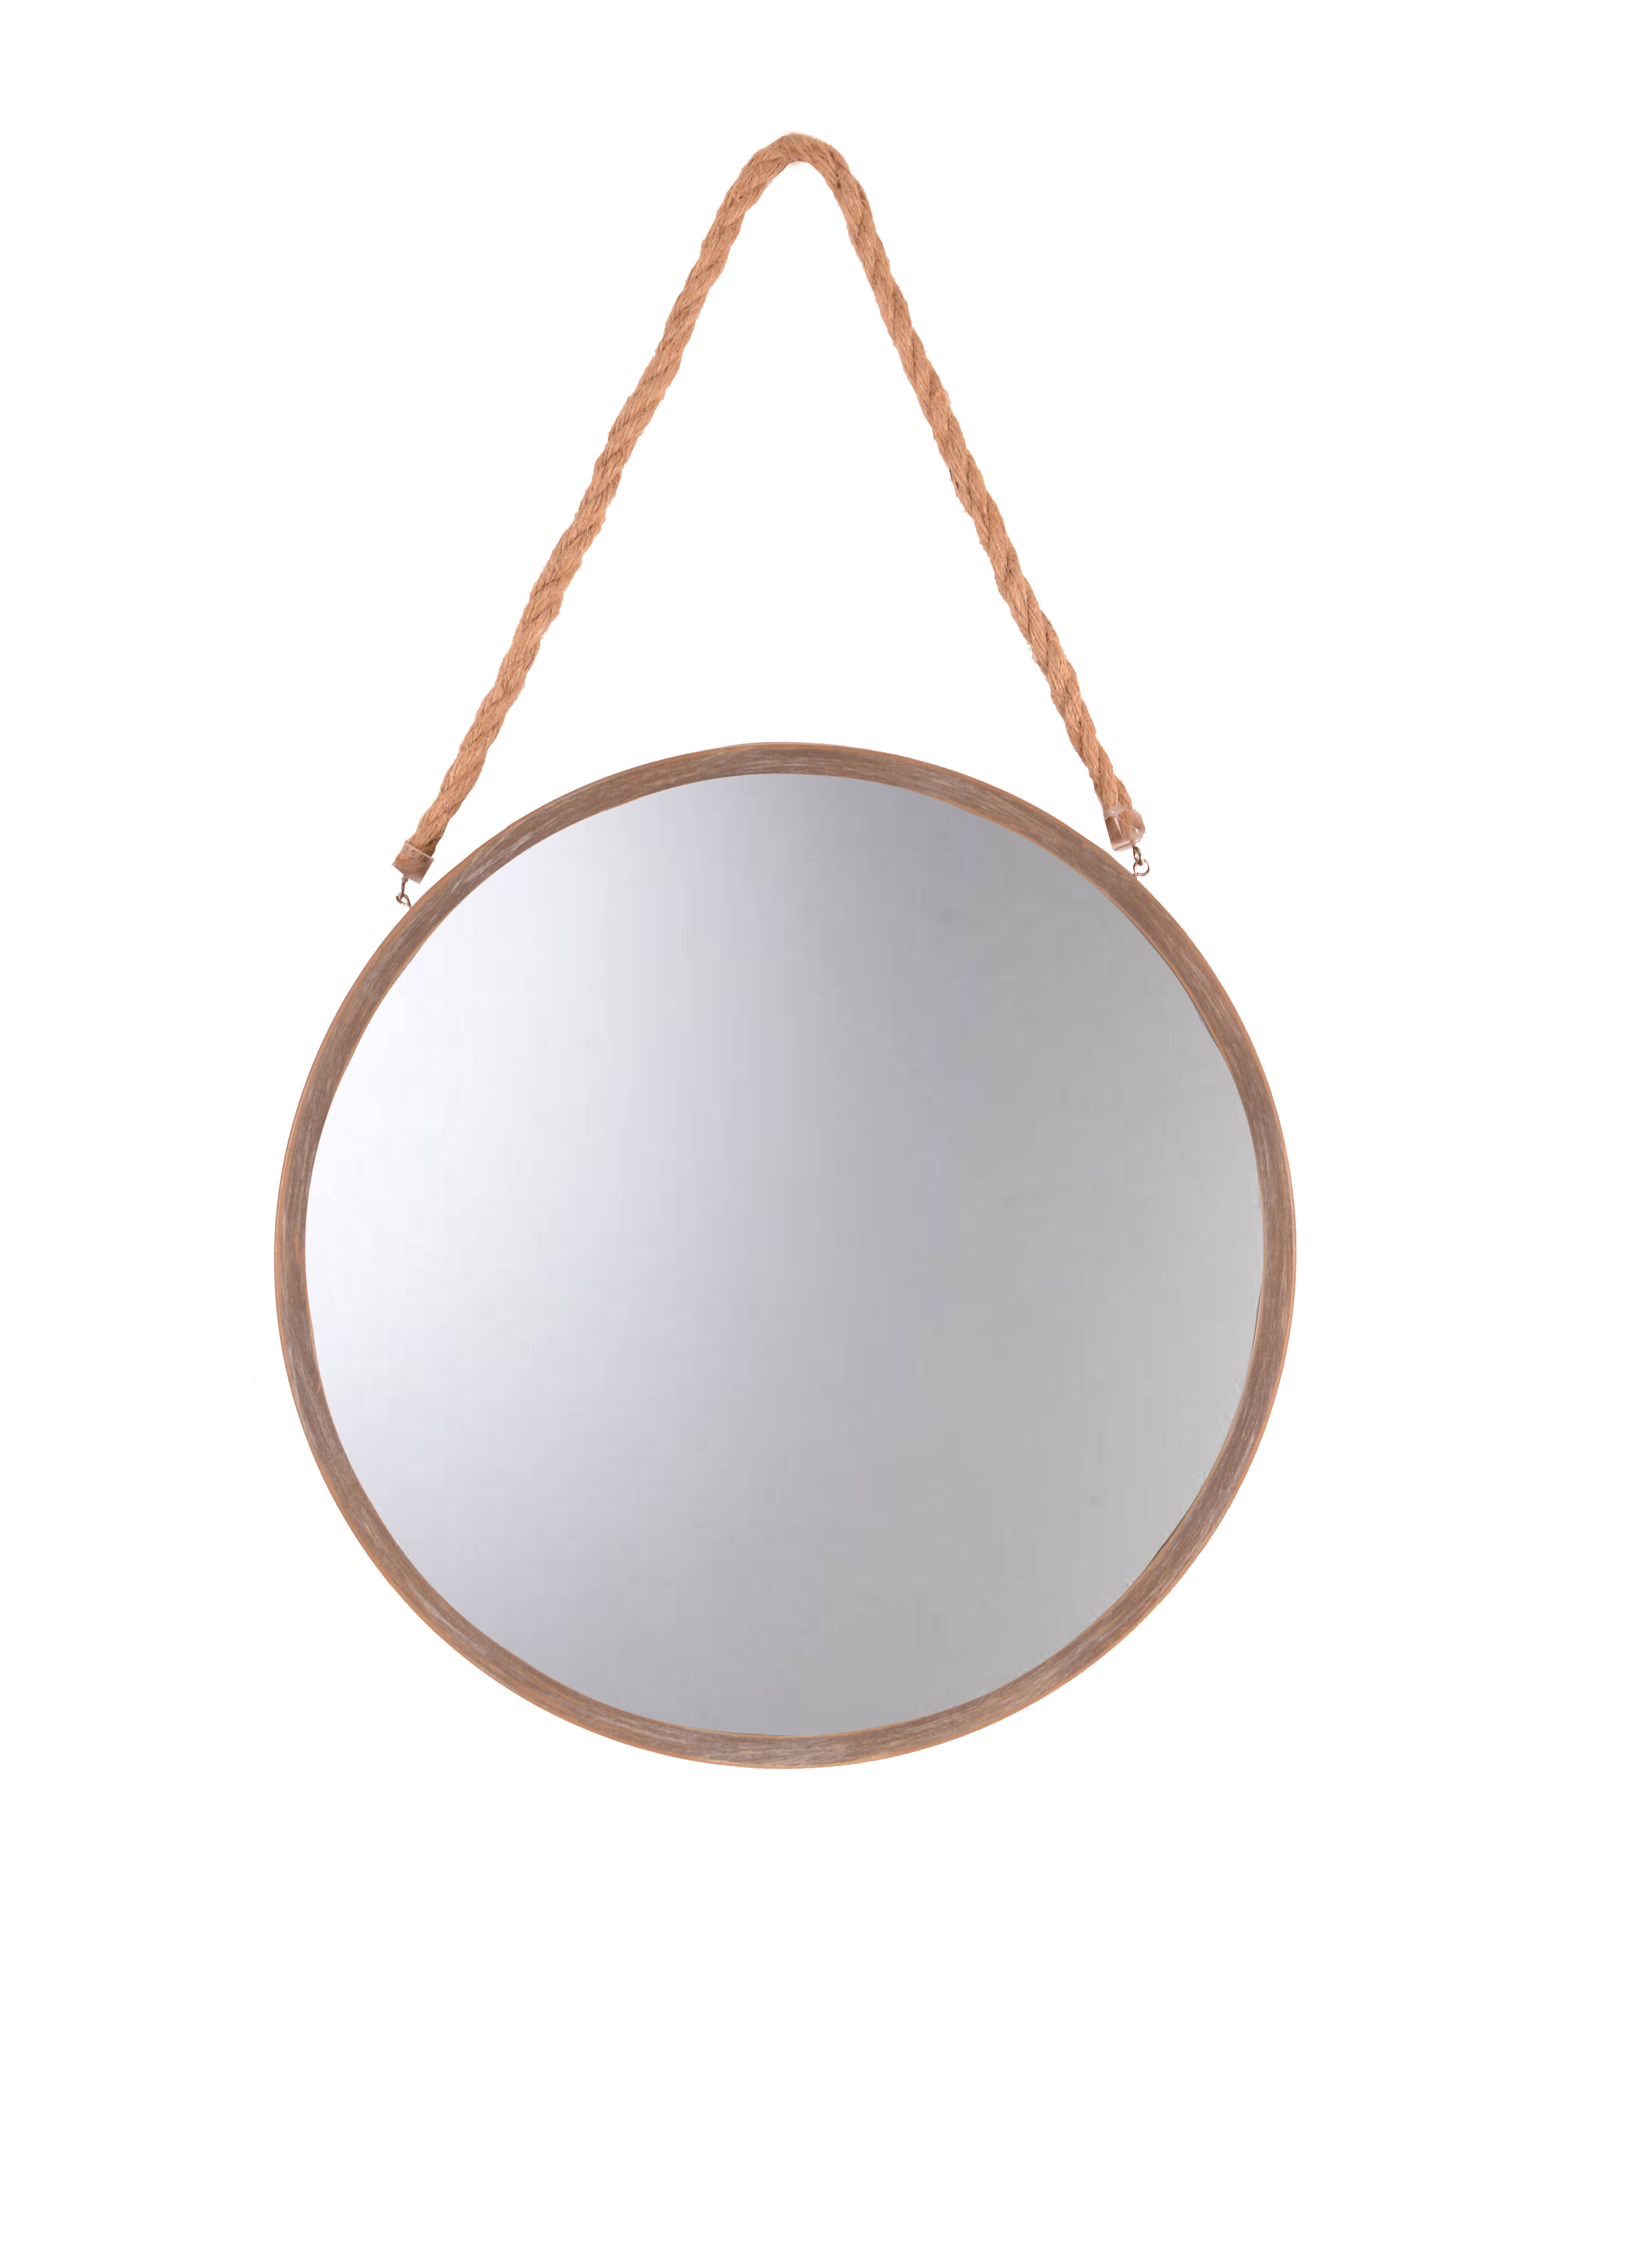 Better Homes and Gardens 16 inch Natural Finish Round Mirror with Rope Hanger by PATTON PICTURE COMPANY